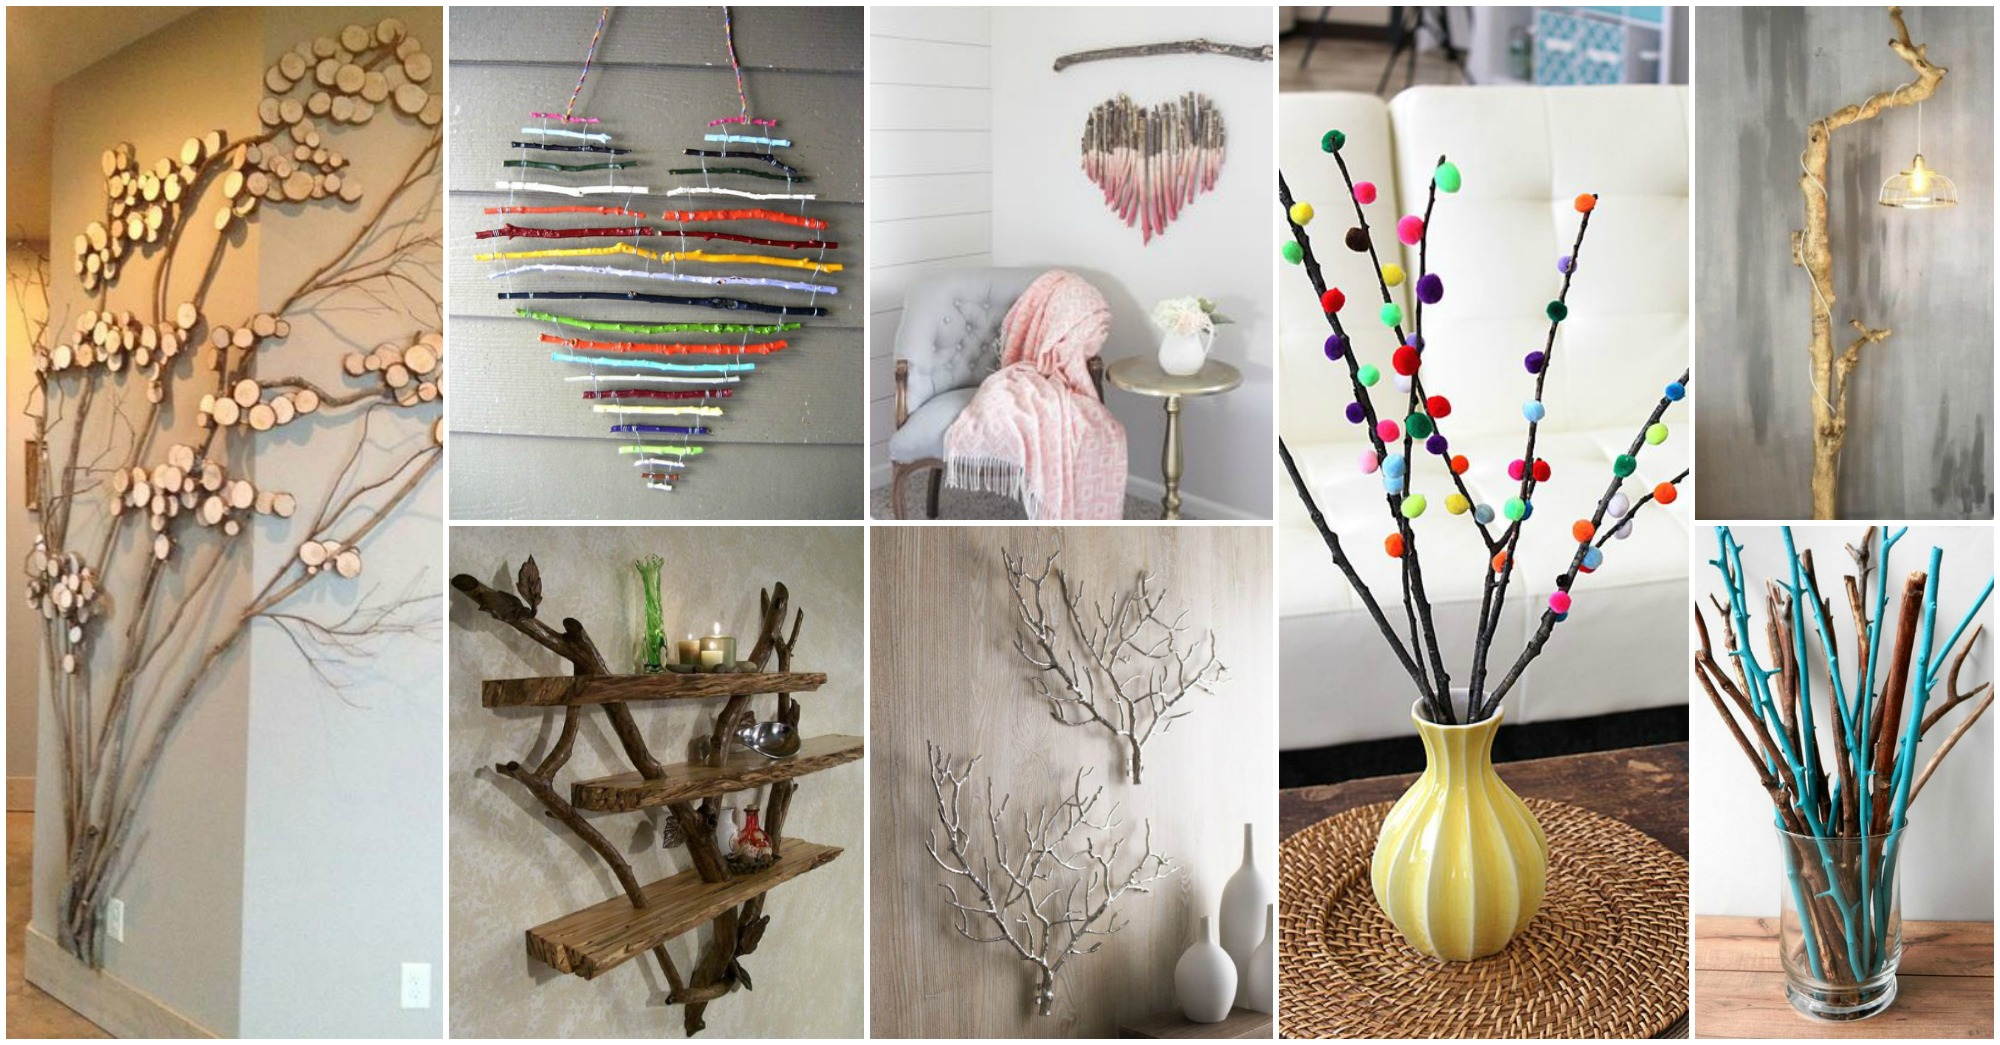 Colorful Bathroom Ideas Diy Tree Branches Home Decor Ideas